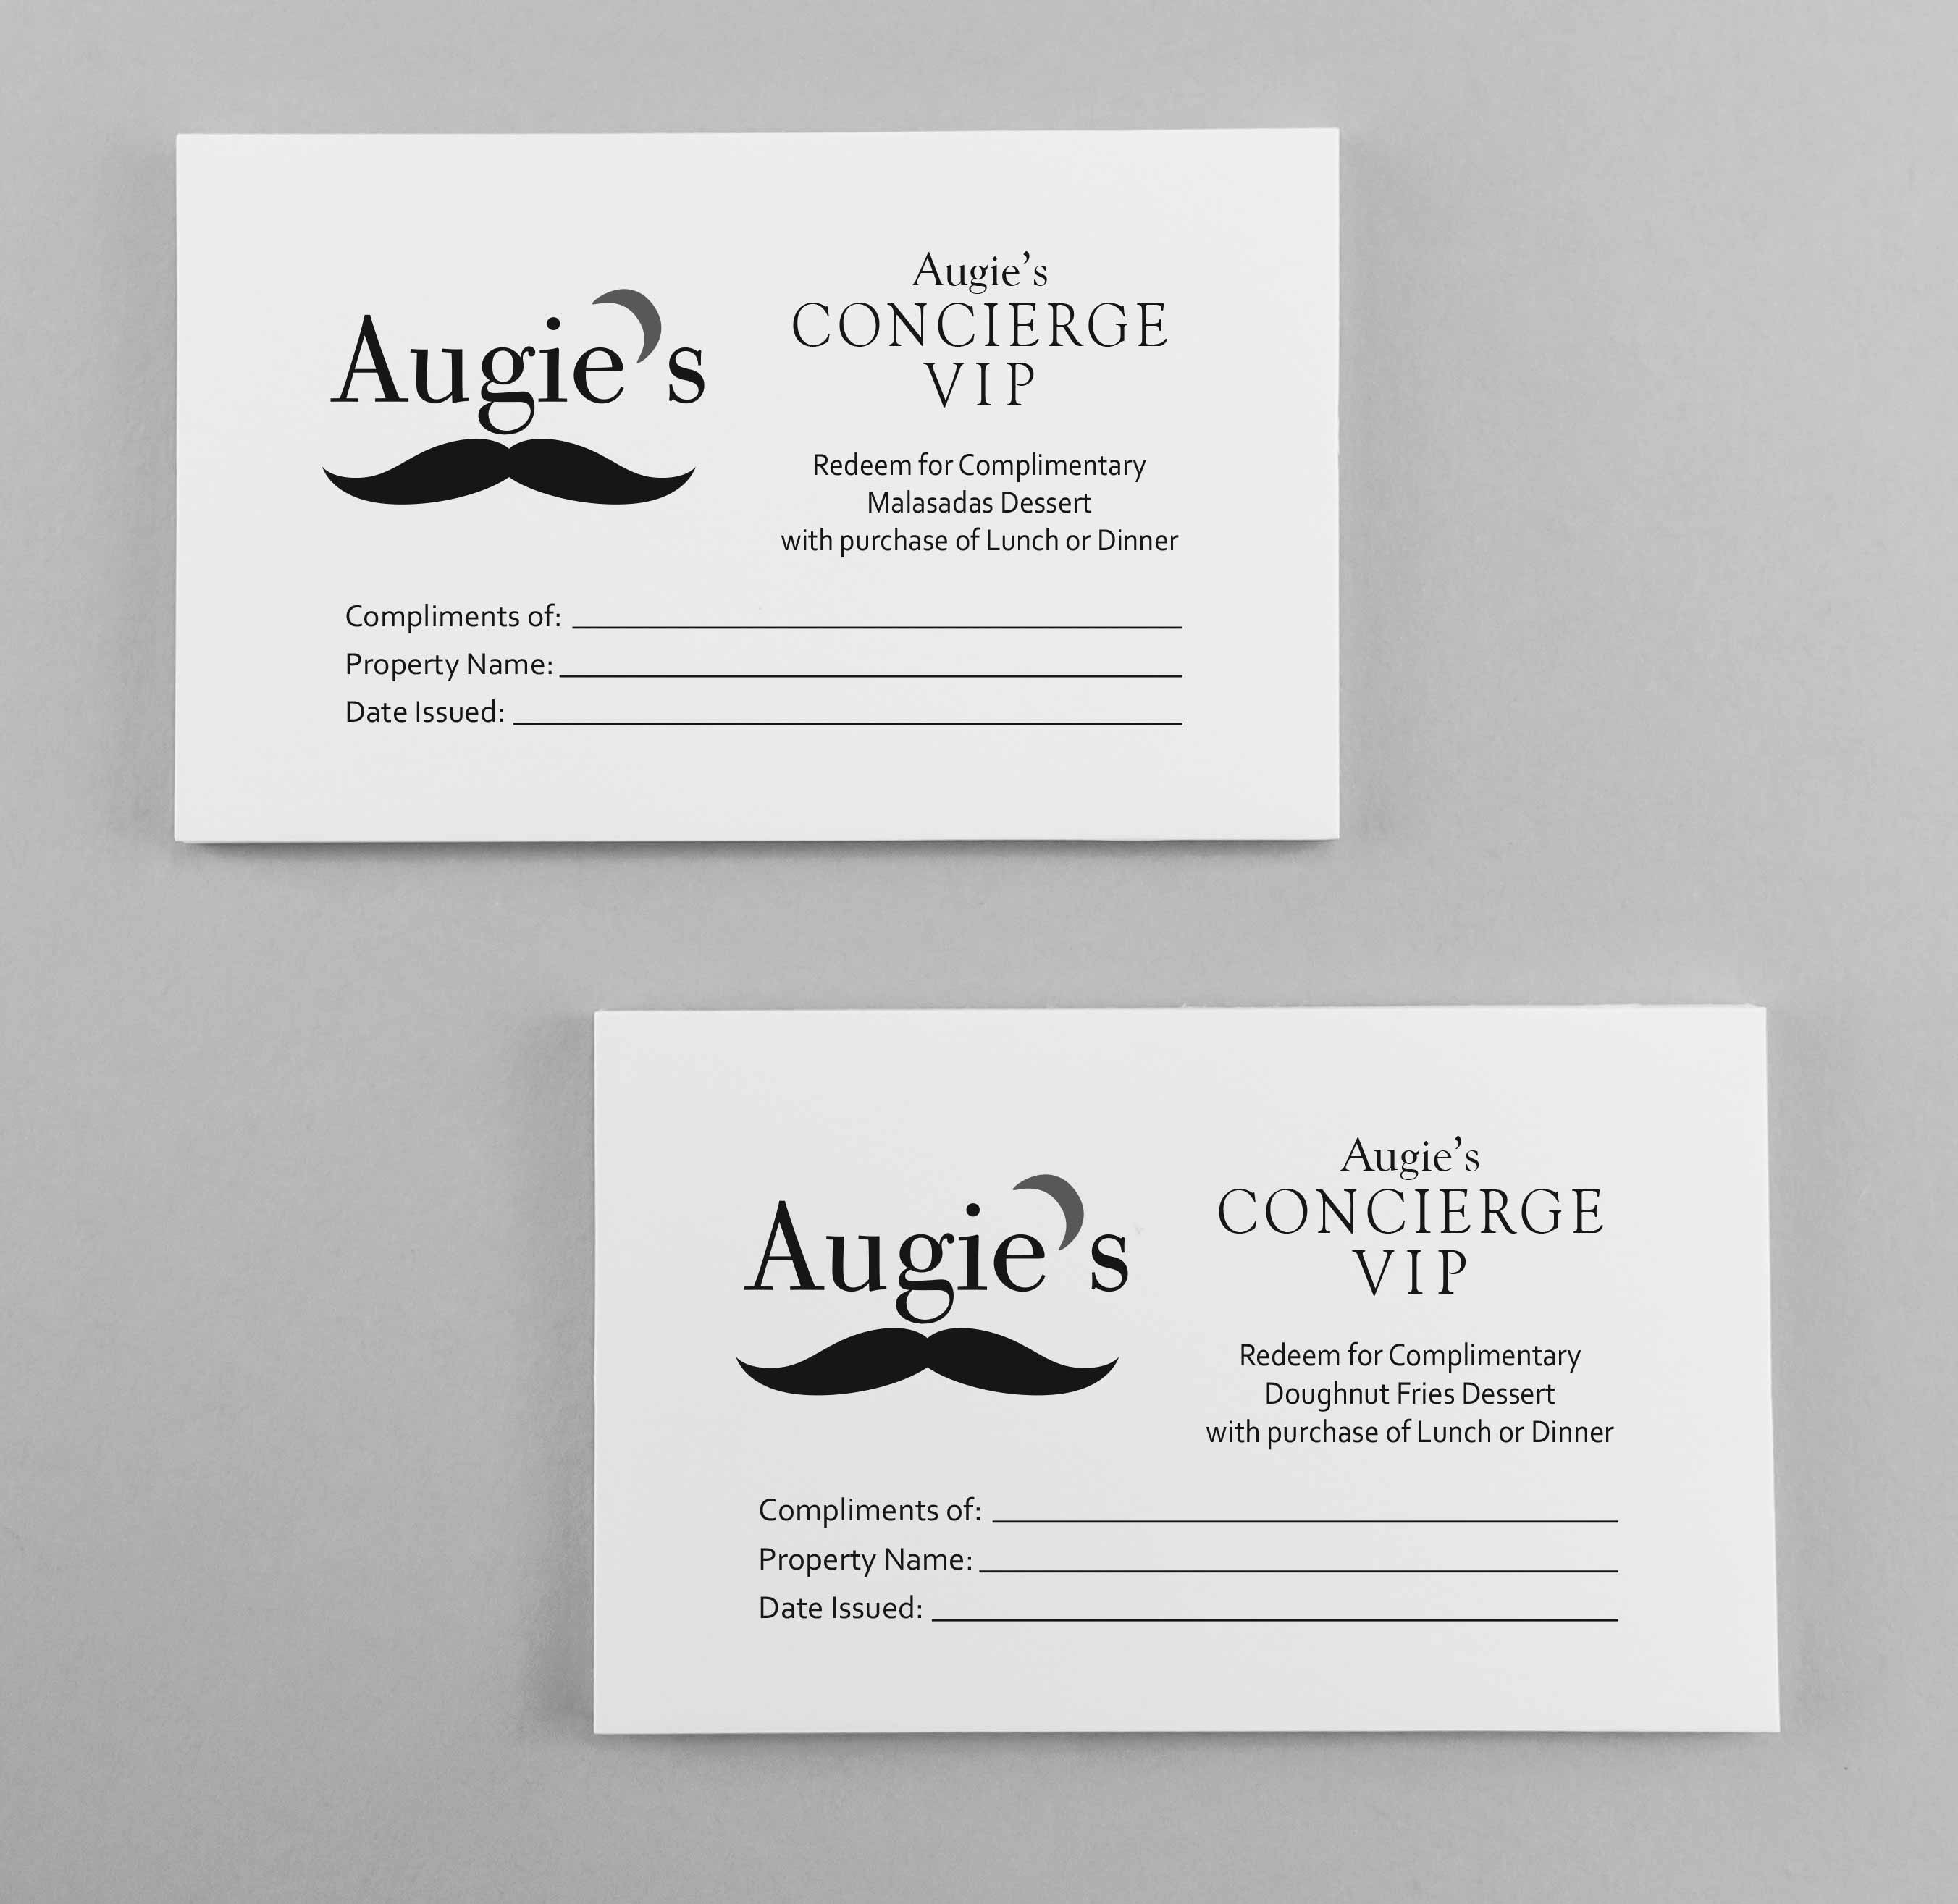 Concierage cards- Design, Print